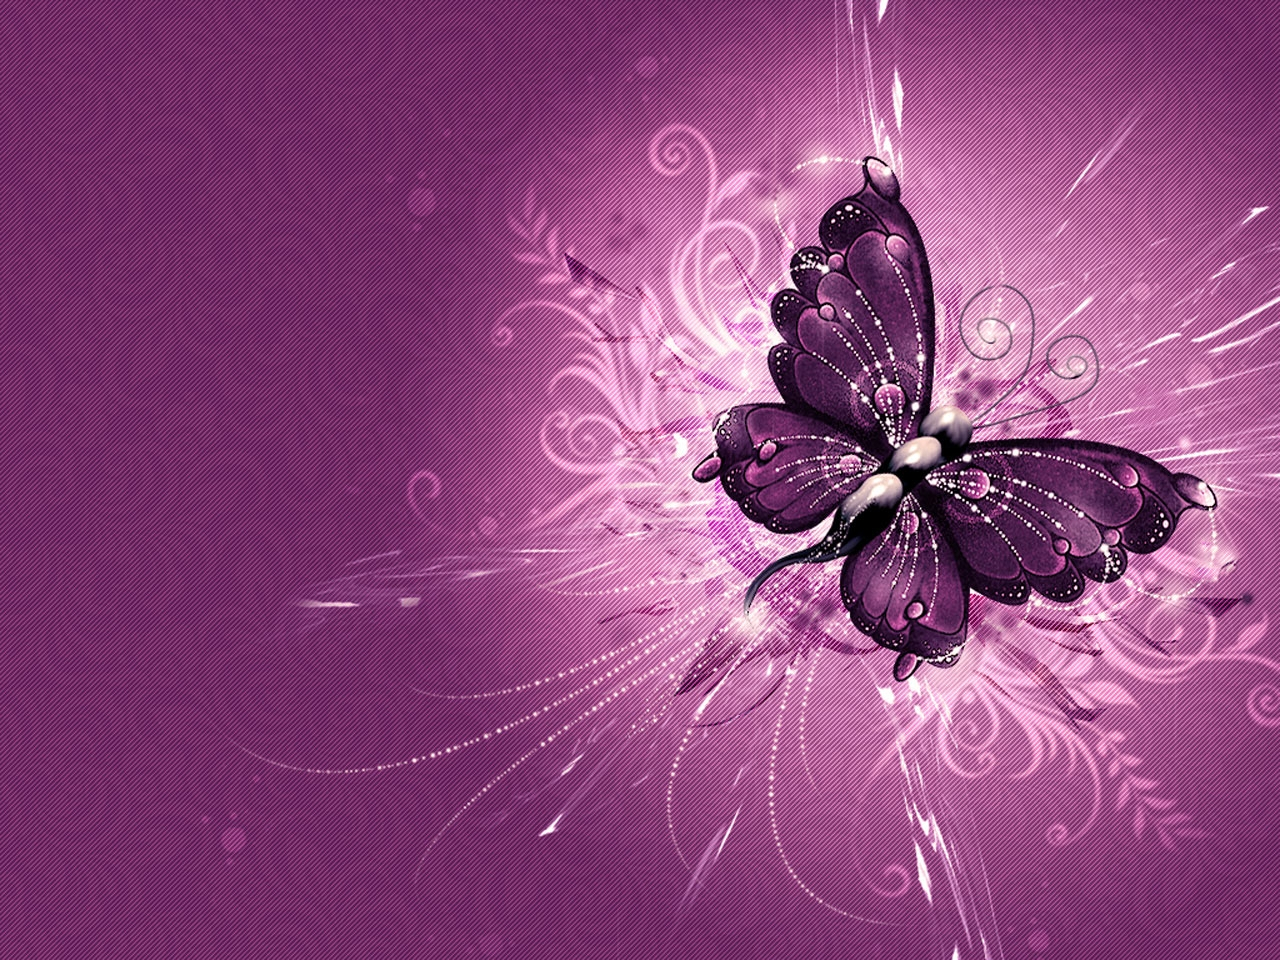 Butterfly Butterflies   hd wallpapers 1080p   Butterfly Butterflies 1280x960